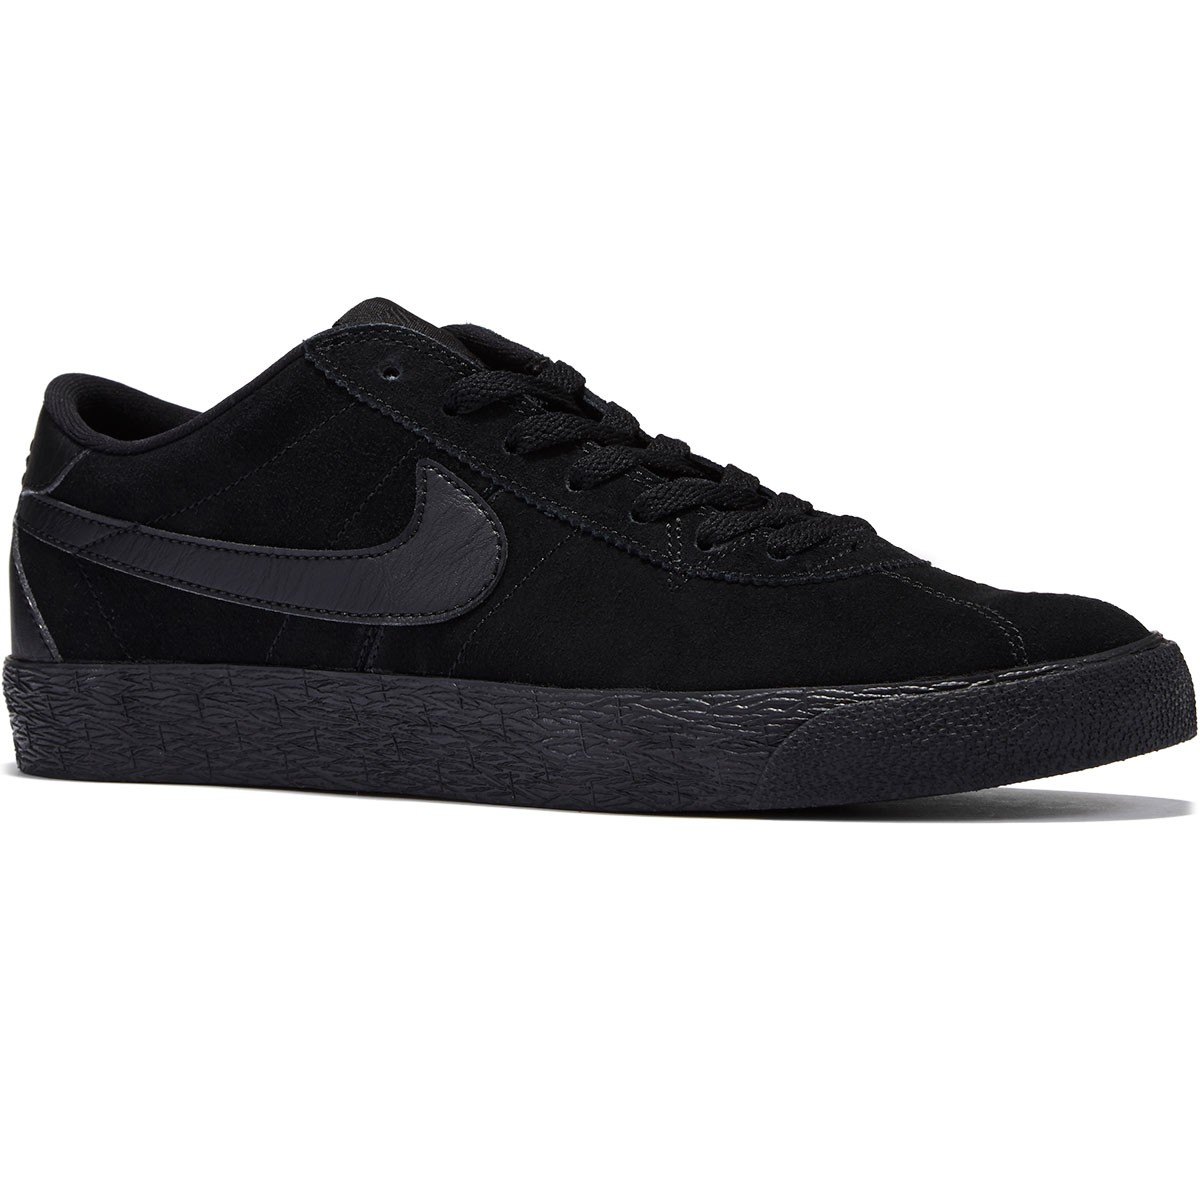 Nike Bruin SB Premium SE Shoes - Black/Black Anthracite/Black